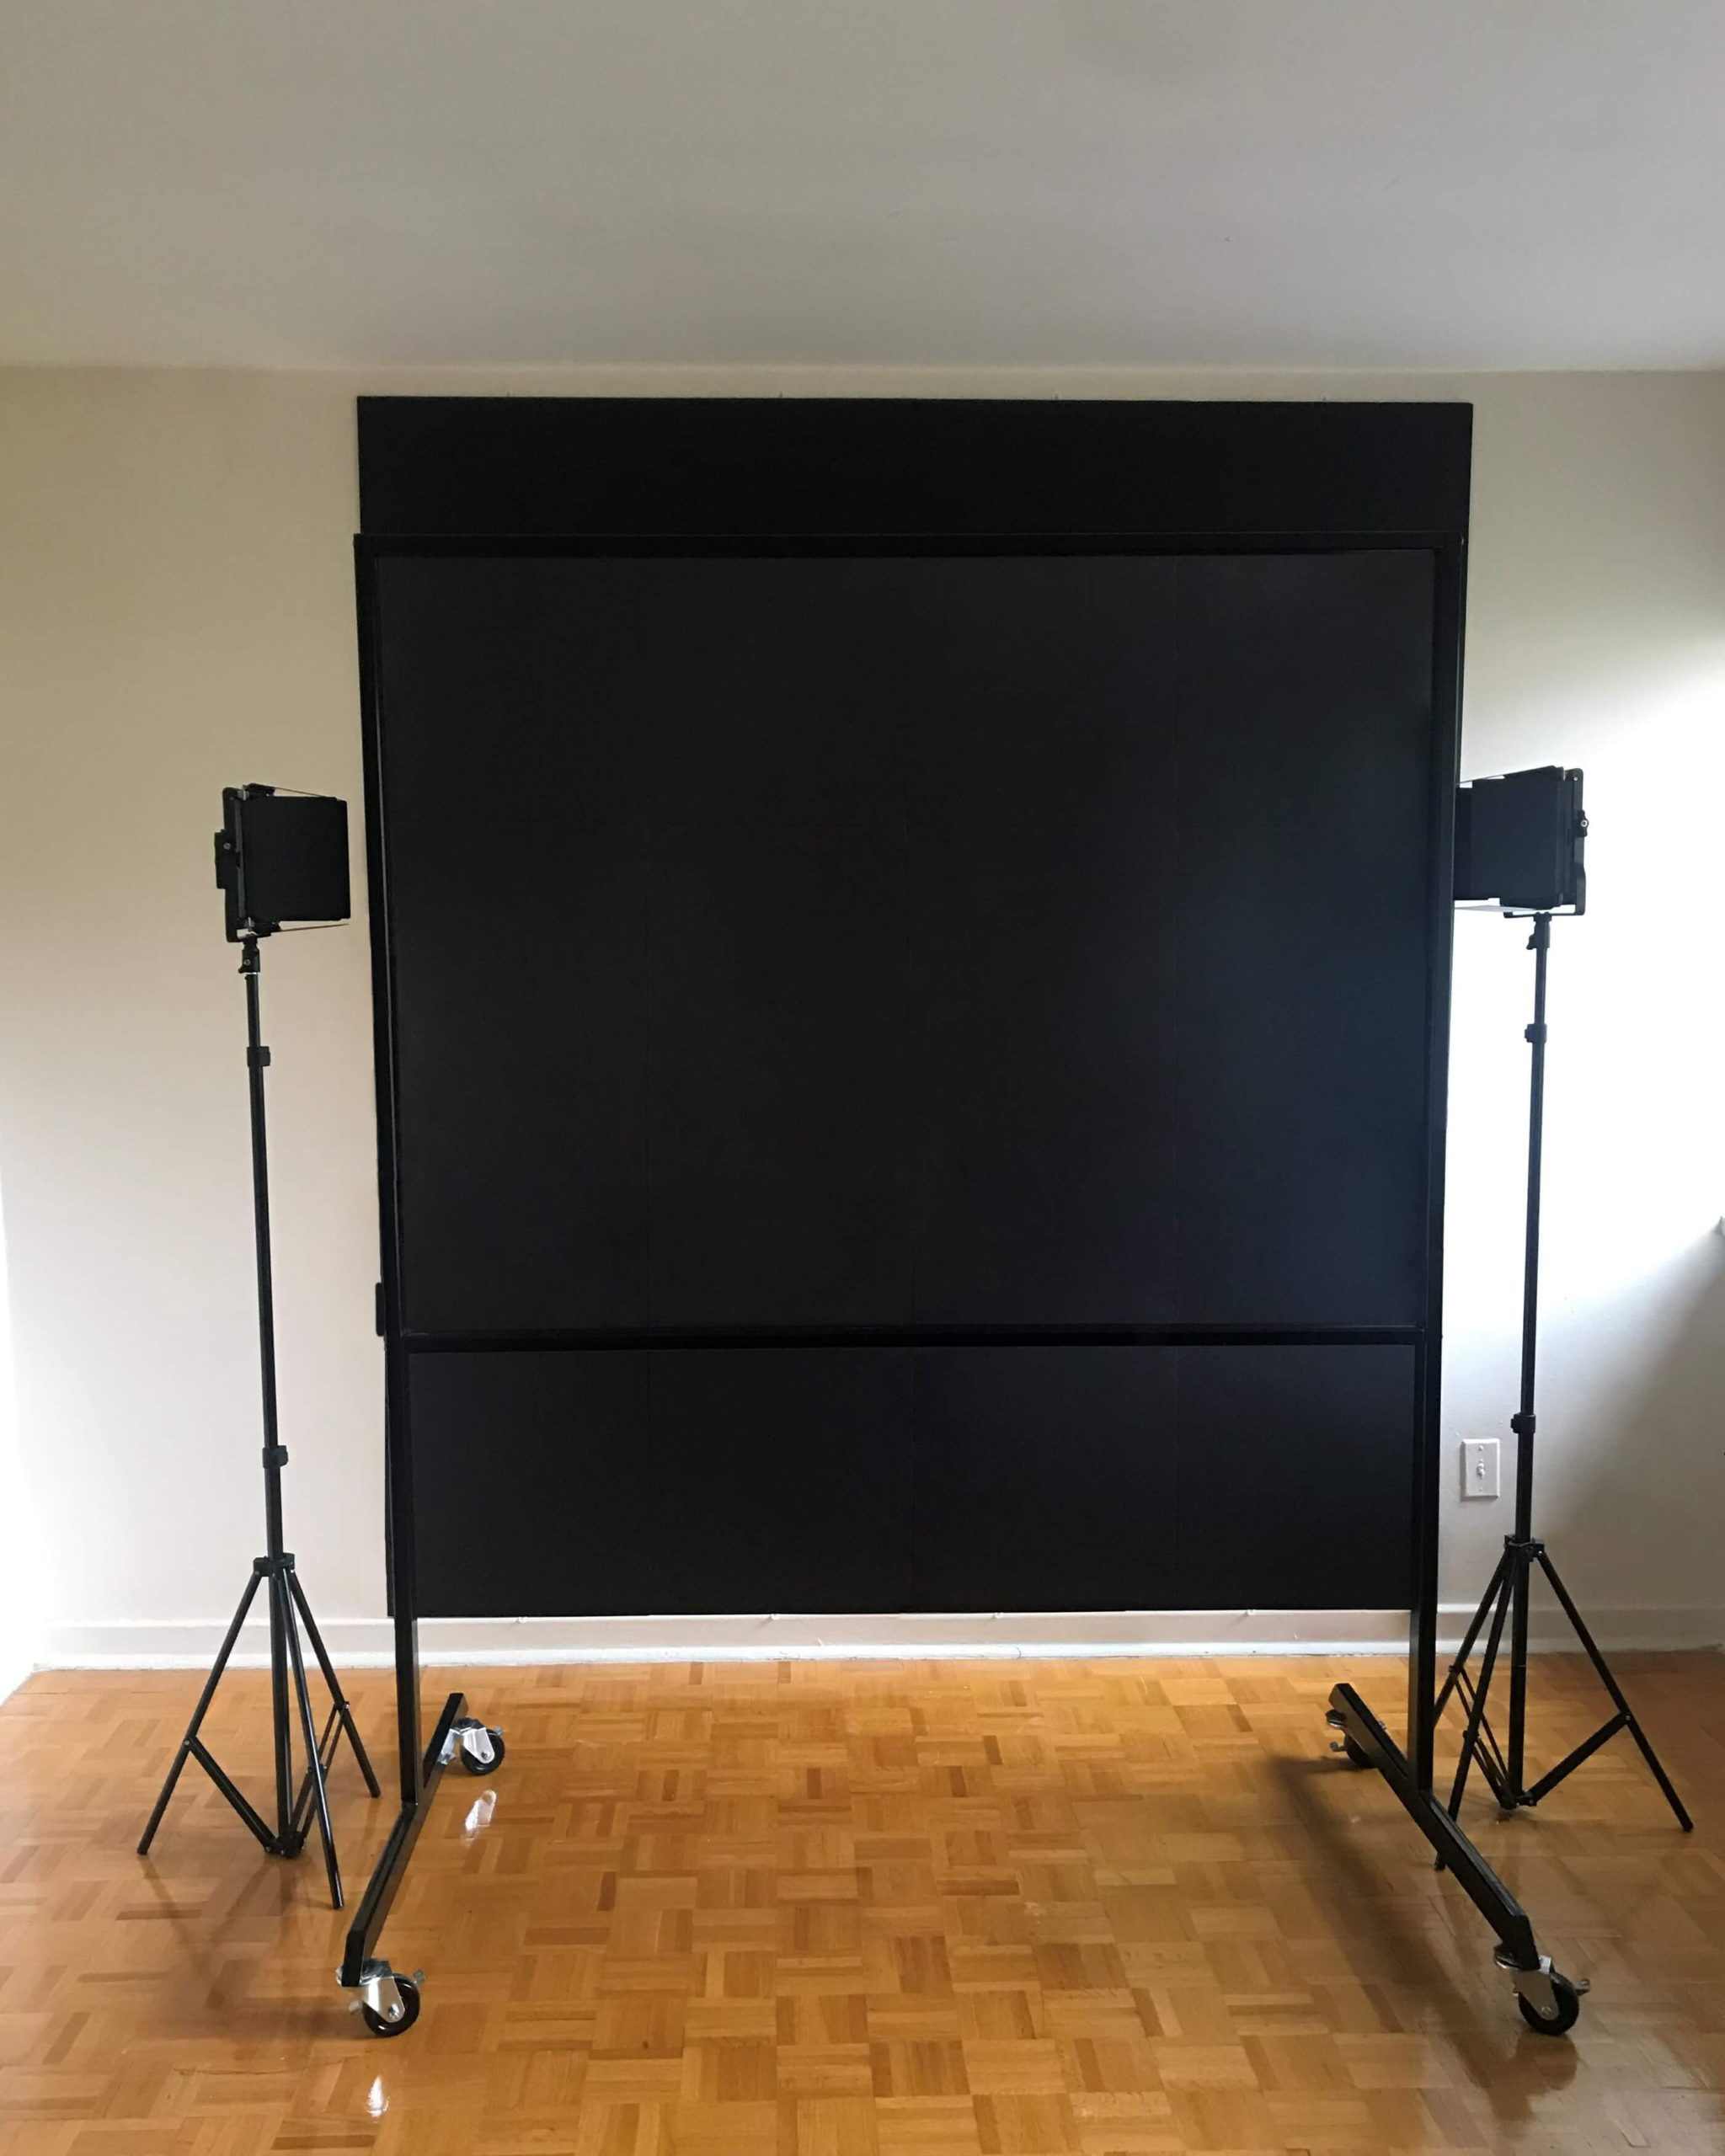 Lightboard studio package large showing lightboard classic product featured in front a black backdrop and two studio lights